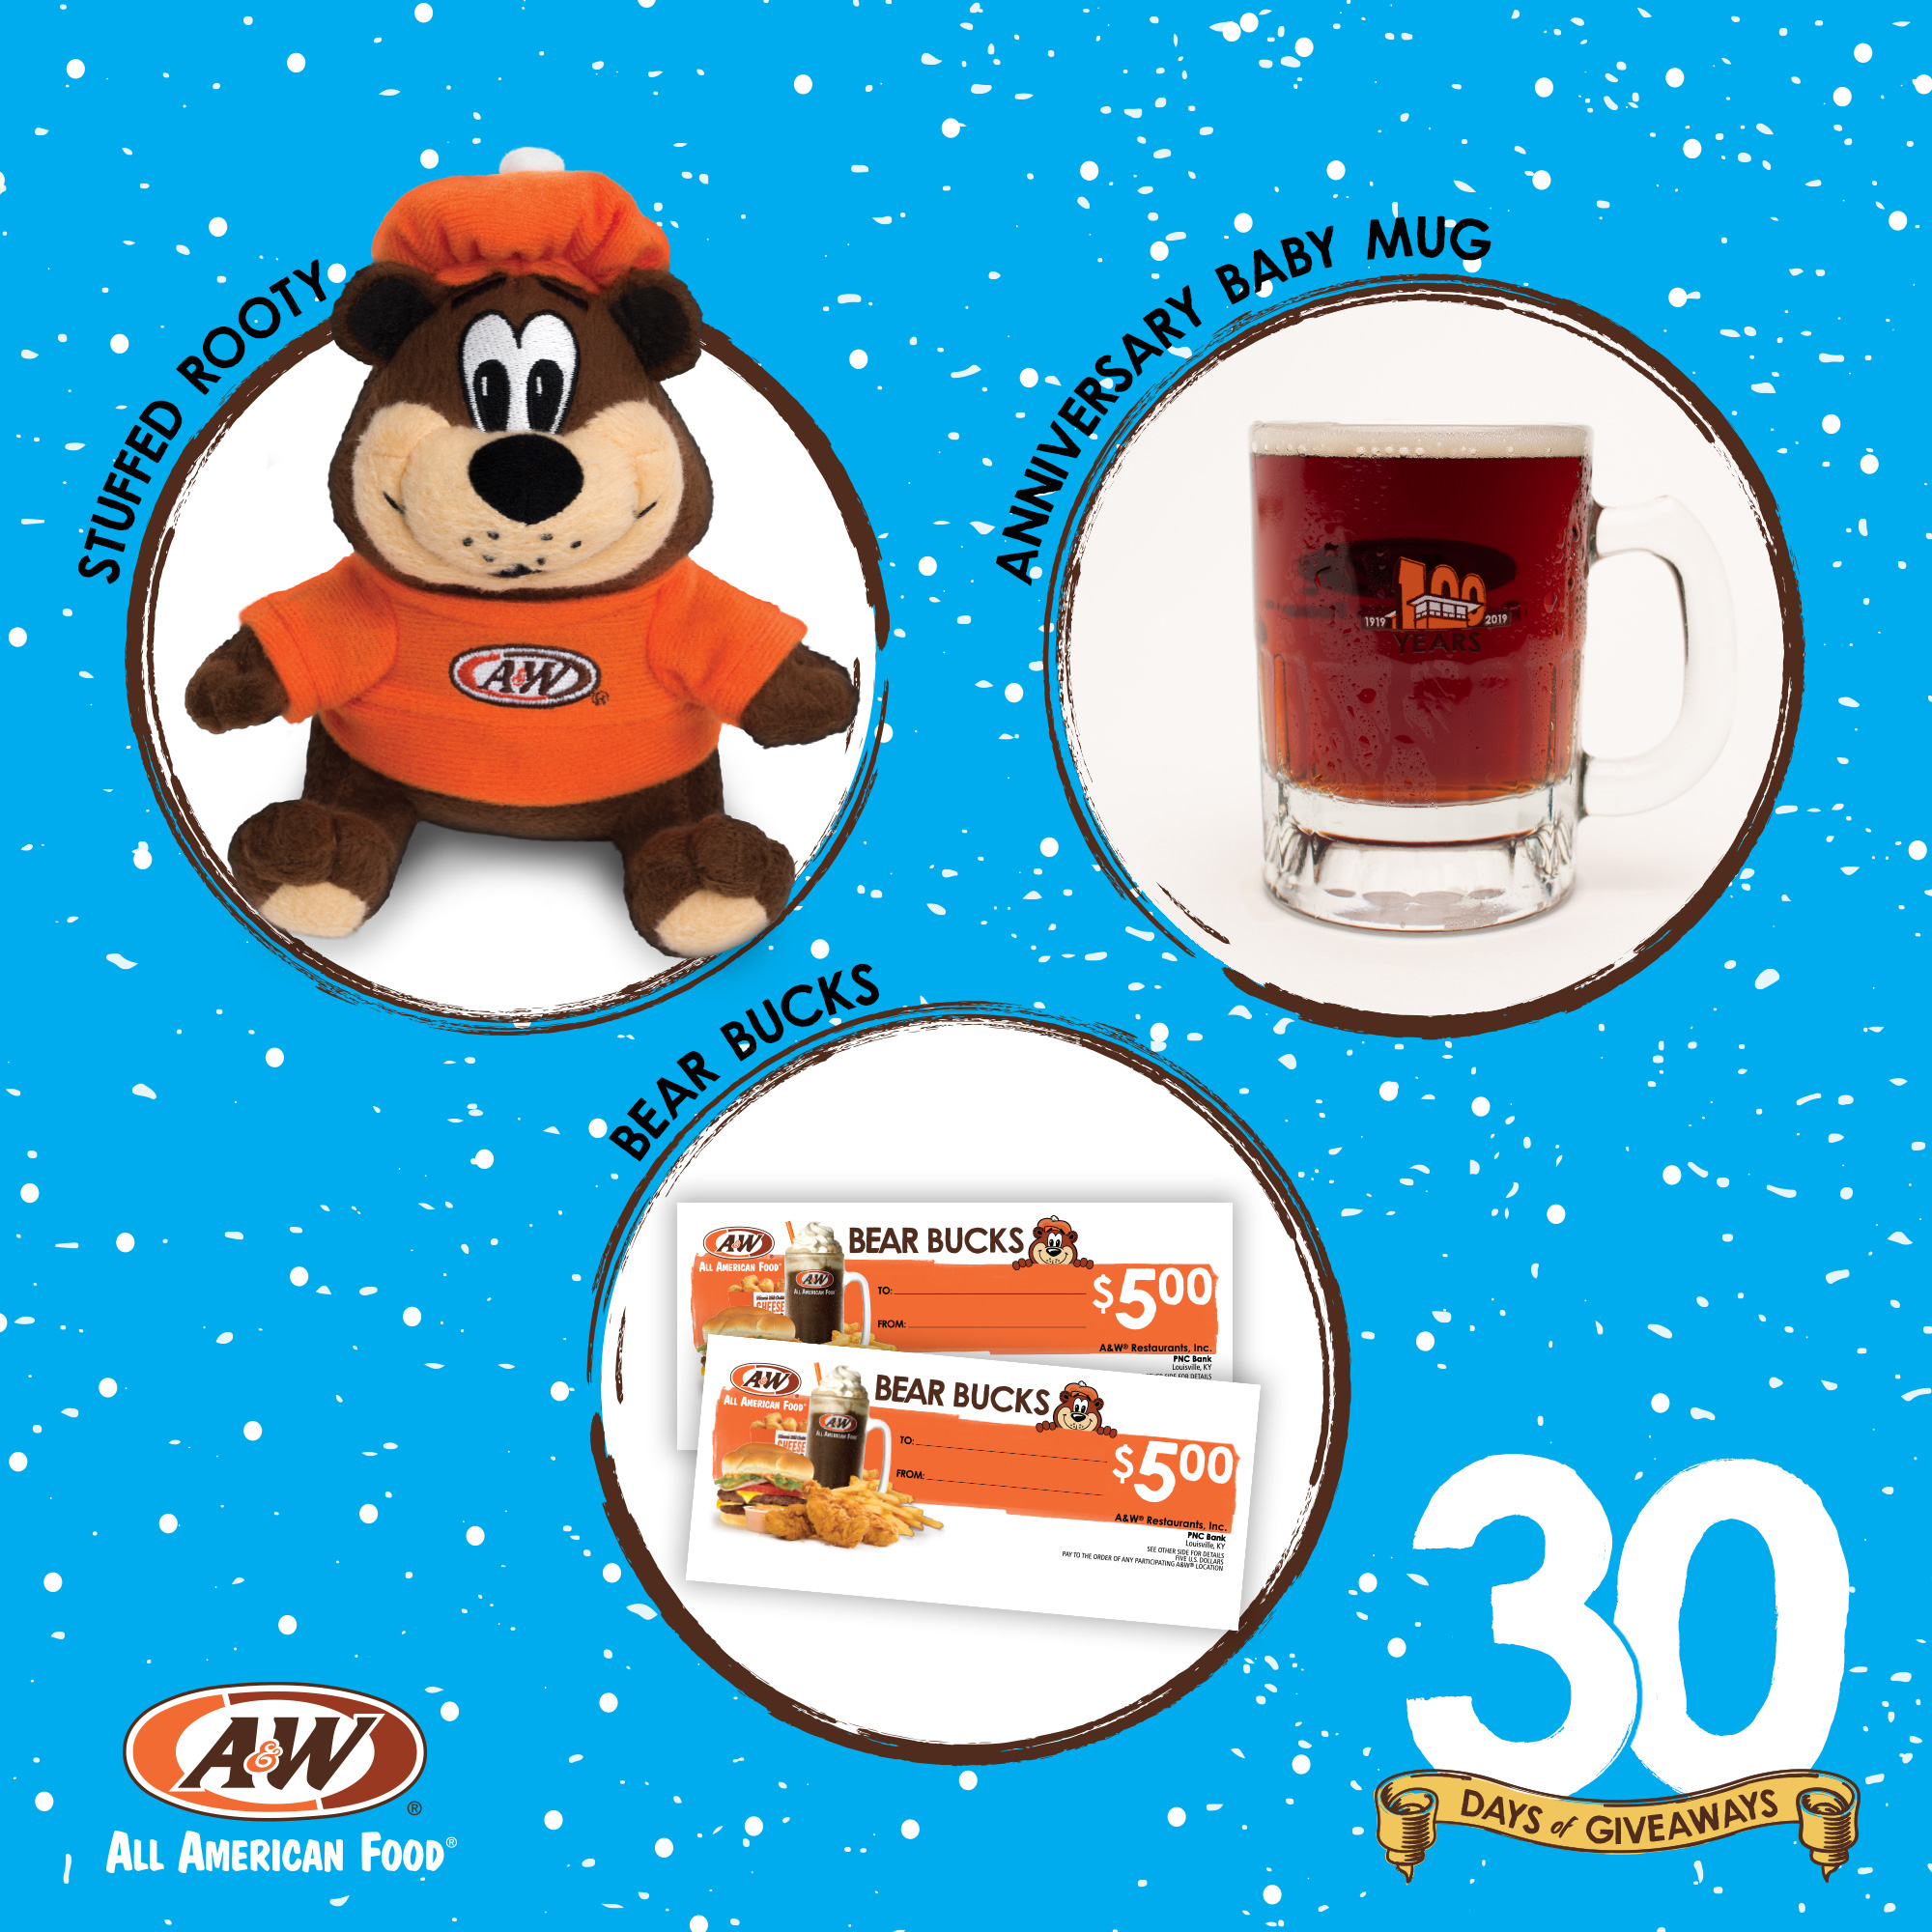 $10 Bear Bucks, Stuffed Rooty, 100th Anniversary Baby Mug